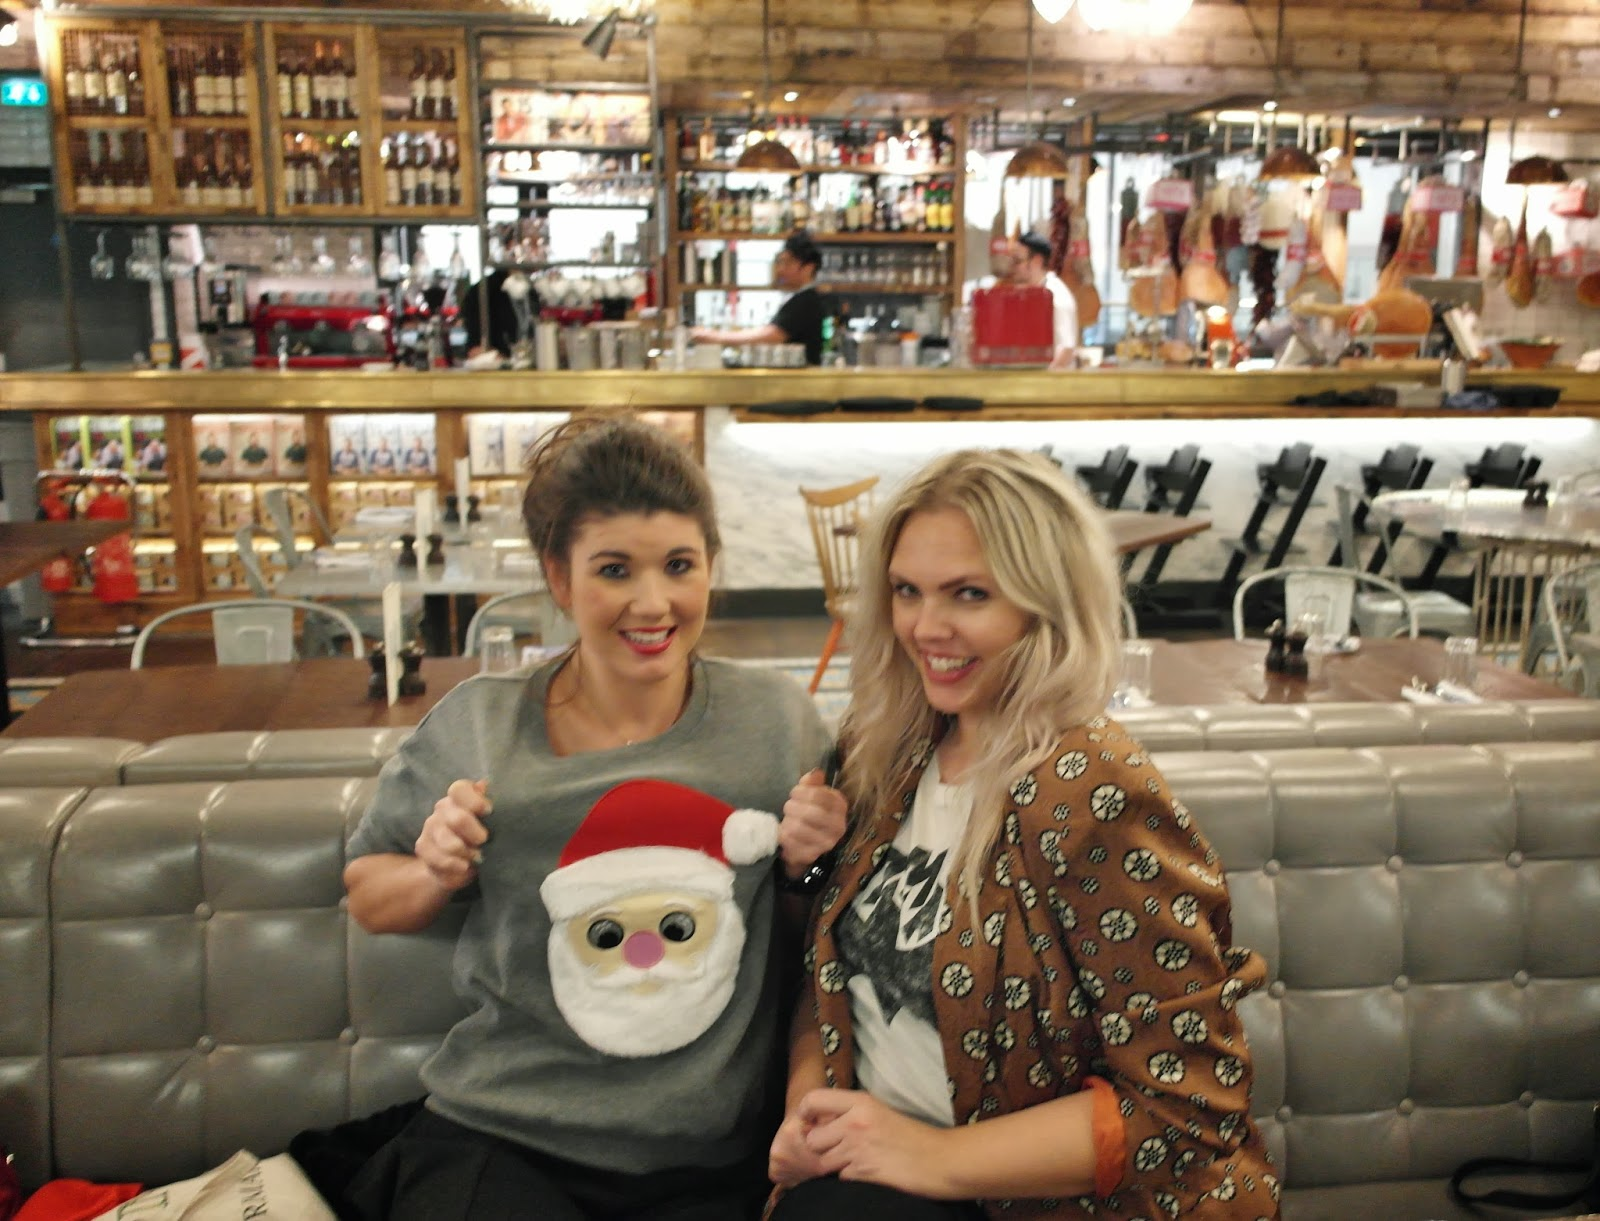 Together with Edith from StyleHasNoSize @ Airport London PrimarkSS14